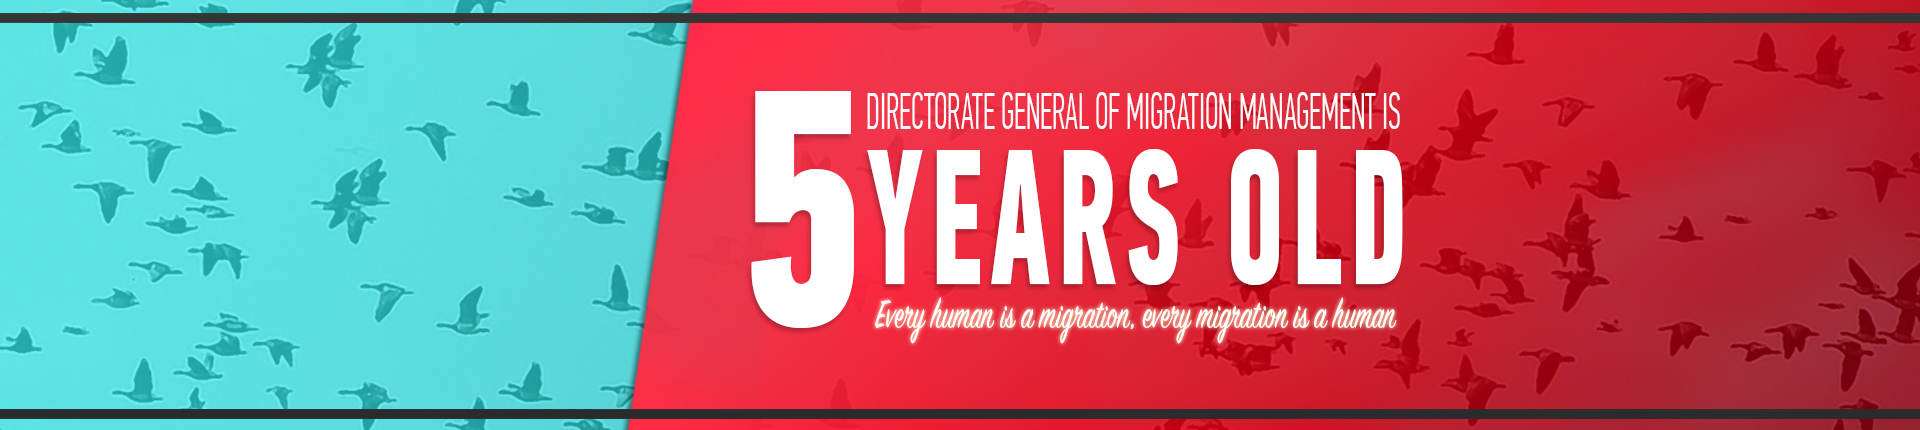 Directorate General of Migration Management is 5 Years Old